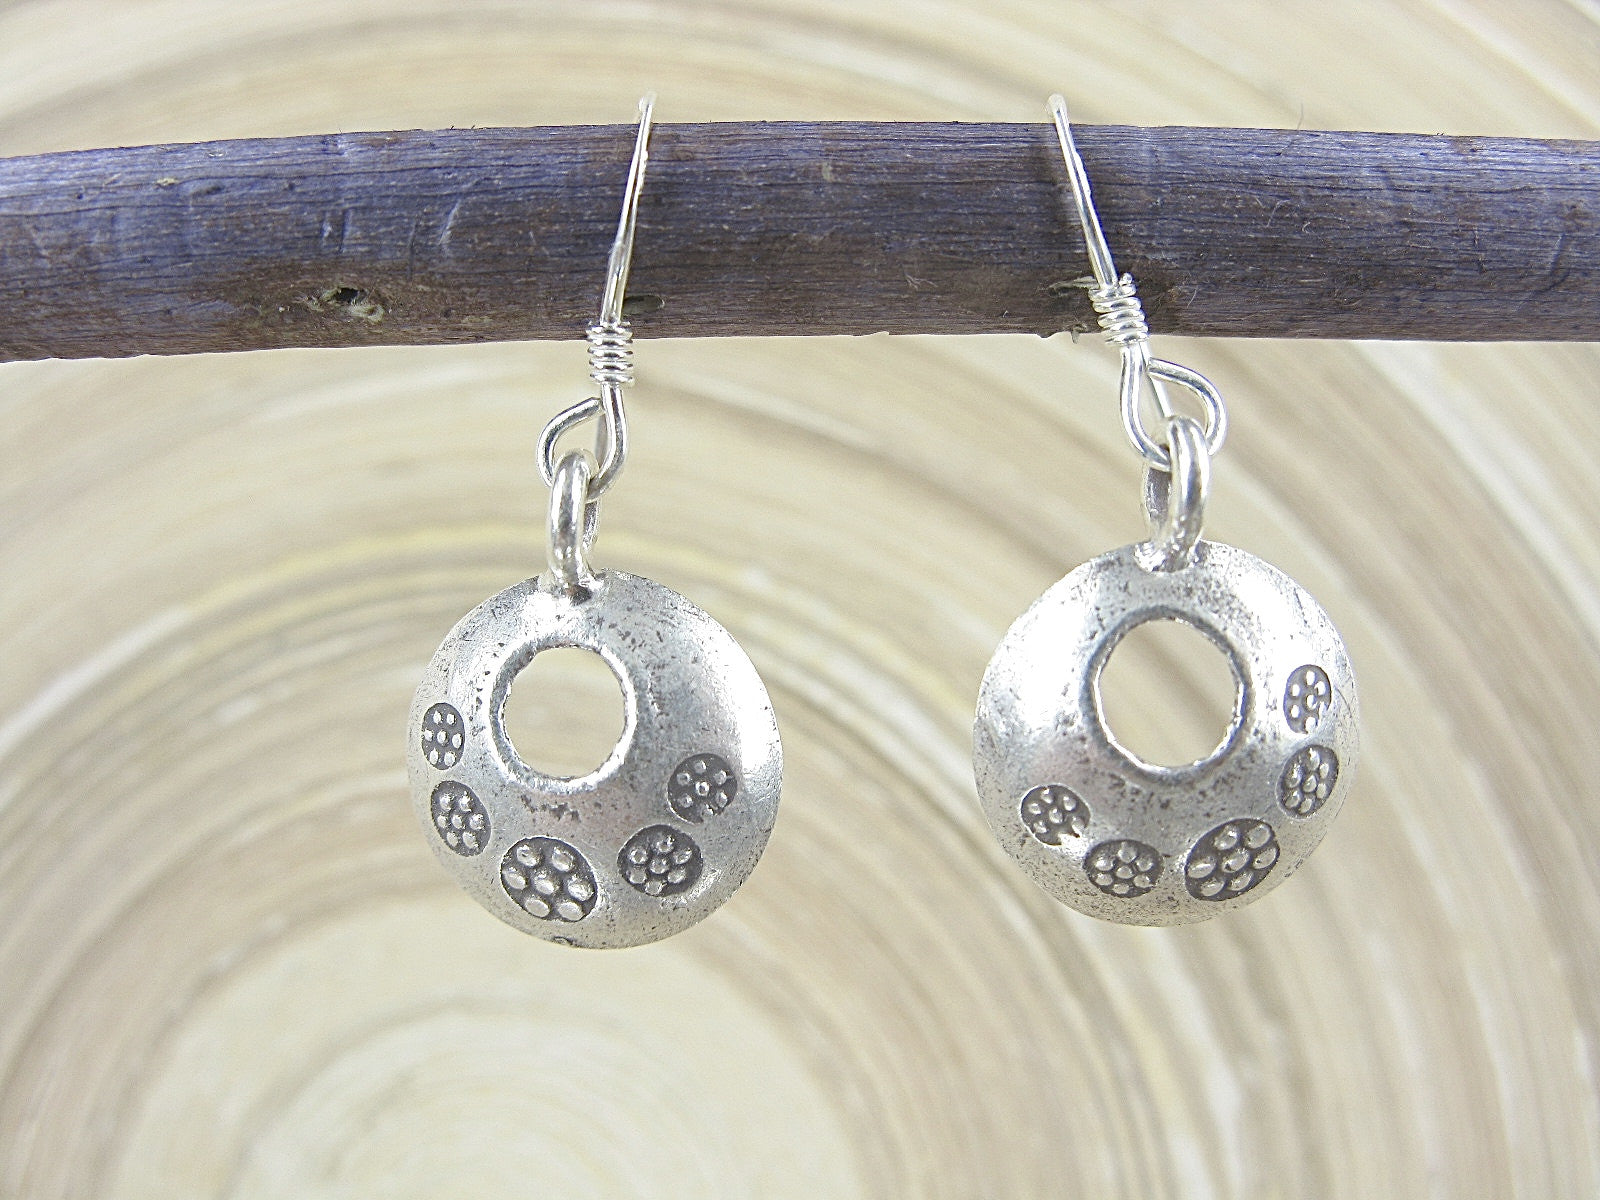 Round Disc Tribal Engrave Dangle 925 Sterling Silver Earrings Earrings Faith Owl - Faith Owl